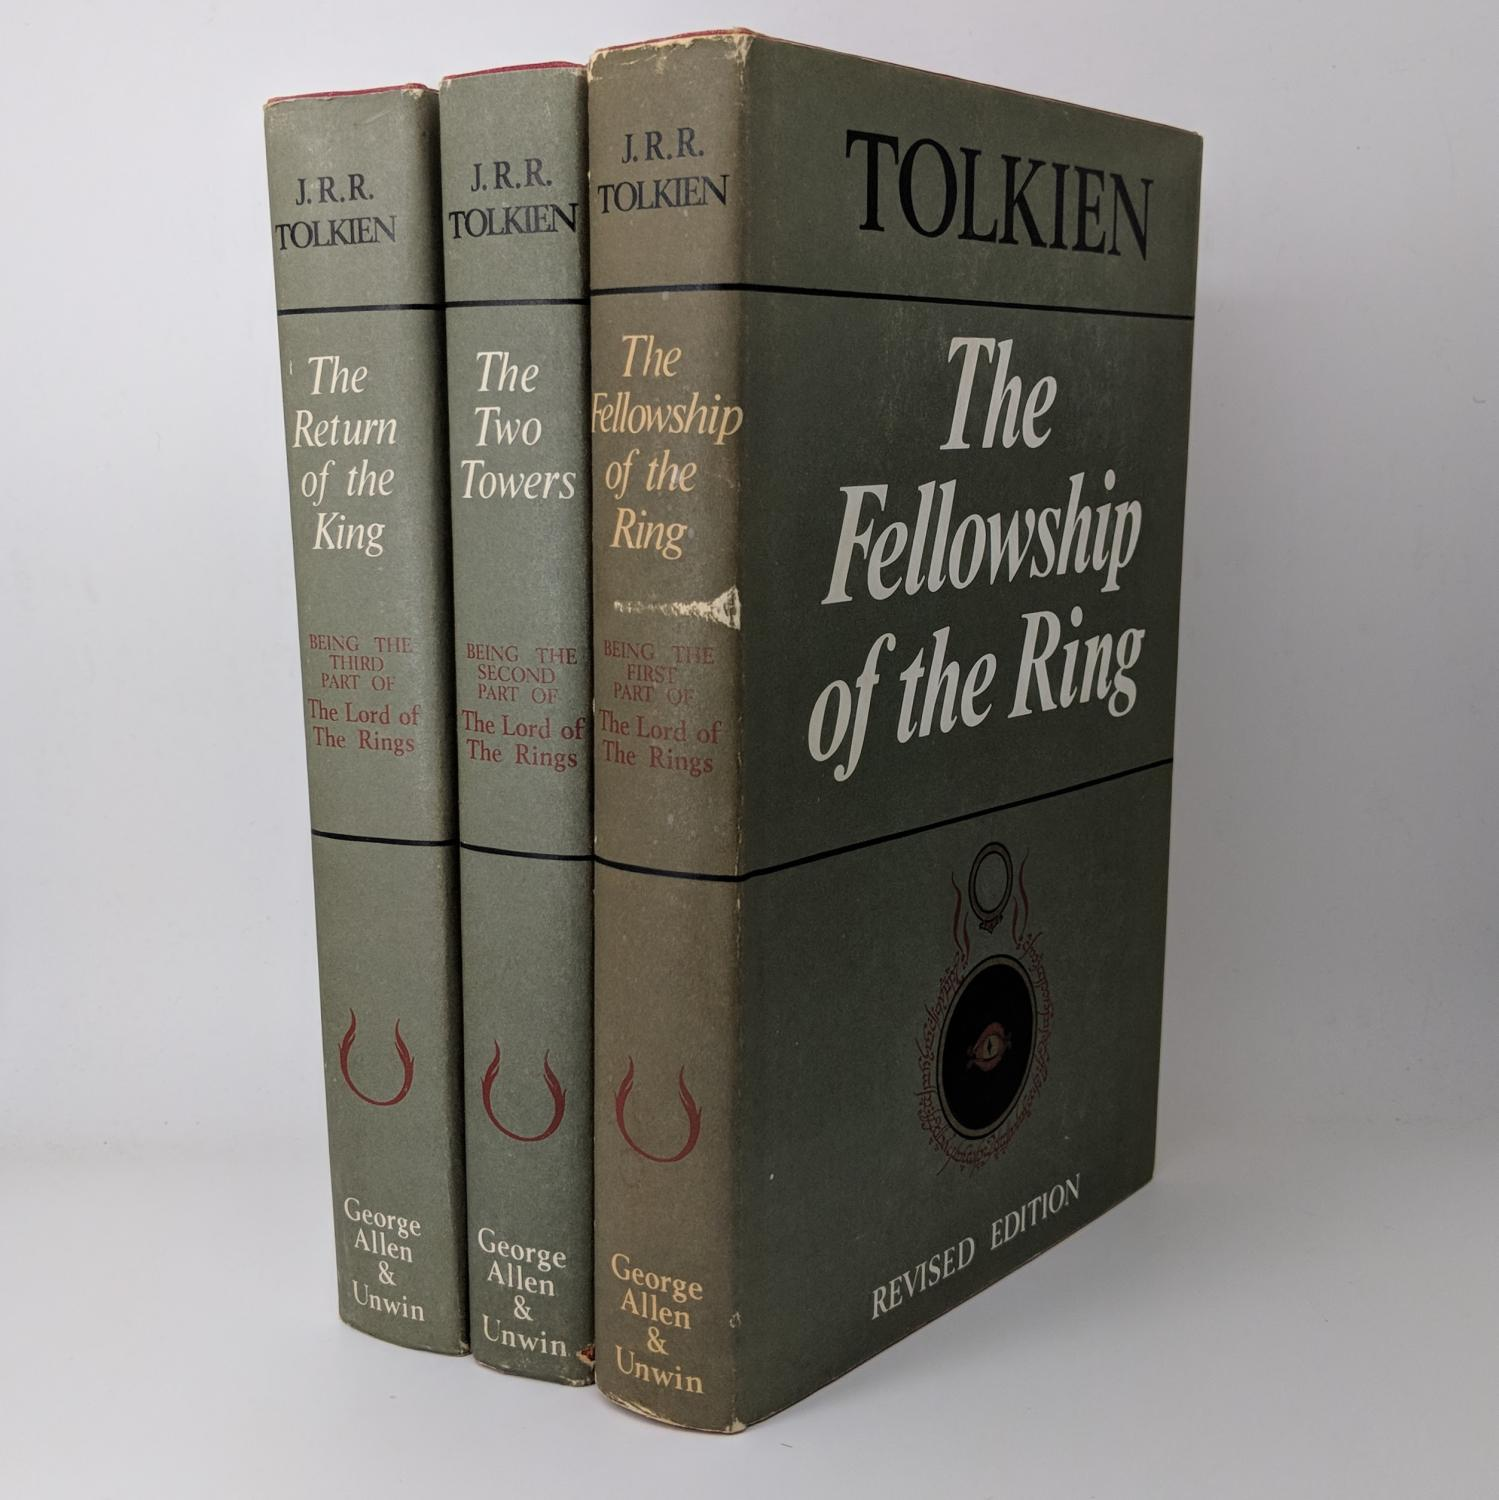 The Lord of The Rings: The Fellowship of the Ring, The Two Towers, The Return of the King - Complete Second Edition Set J.R.R. Tolkien